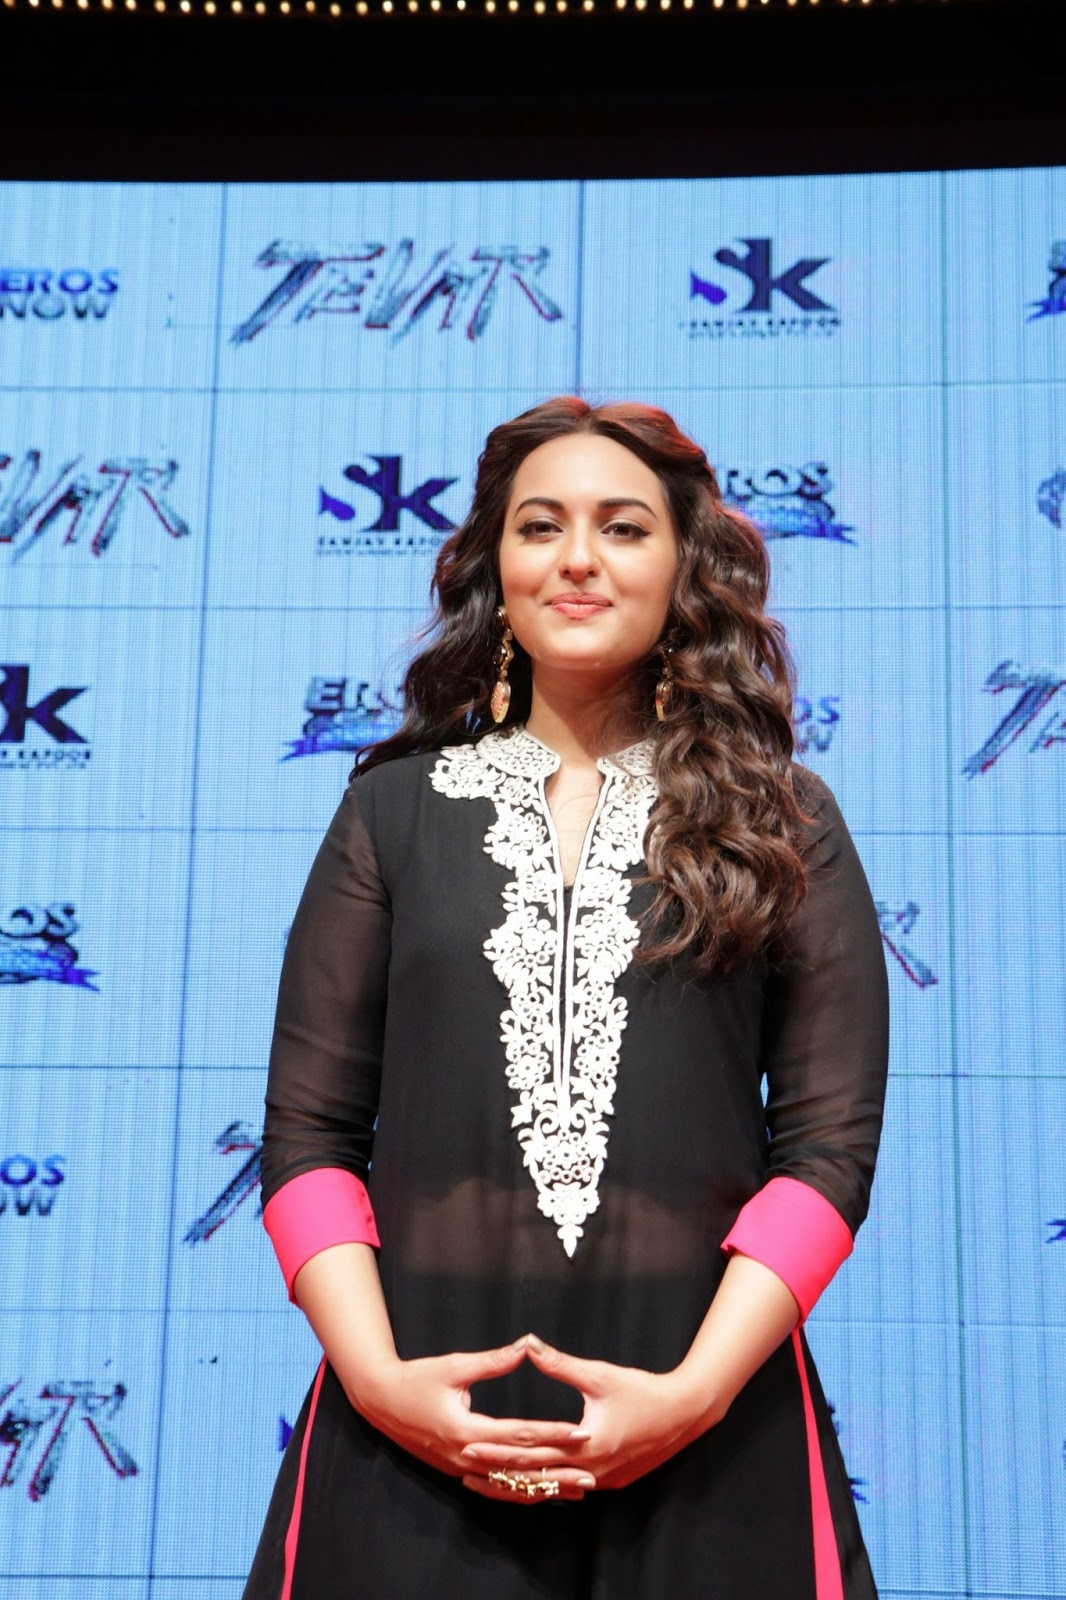 Bollywood Glamorous Chubby Actress Sonakshi Sinha Smiling Face In Black Gown